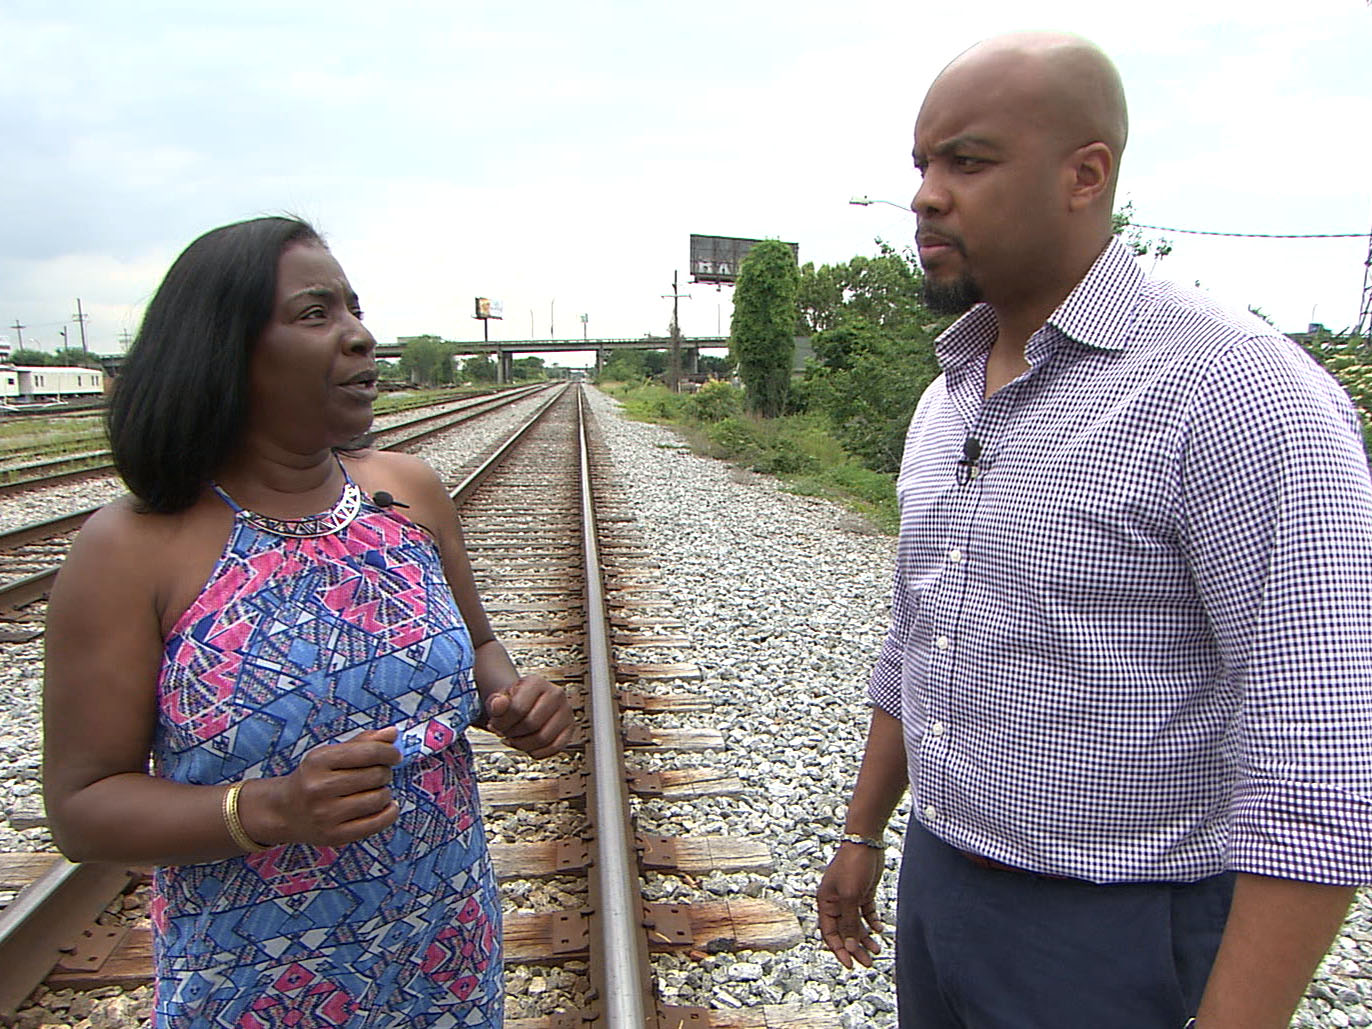 Eyewitness recounts Katrina 10 years later